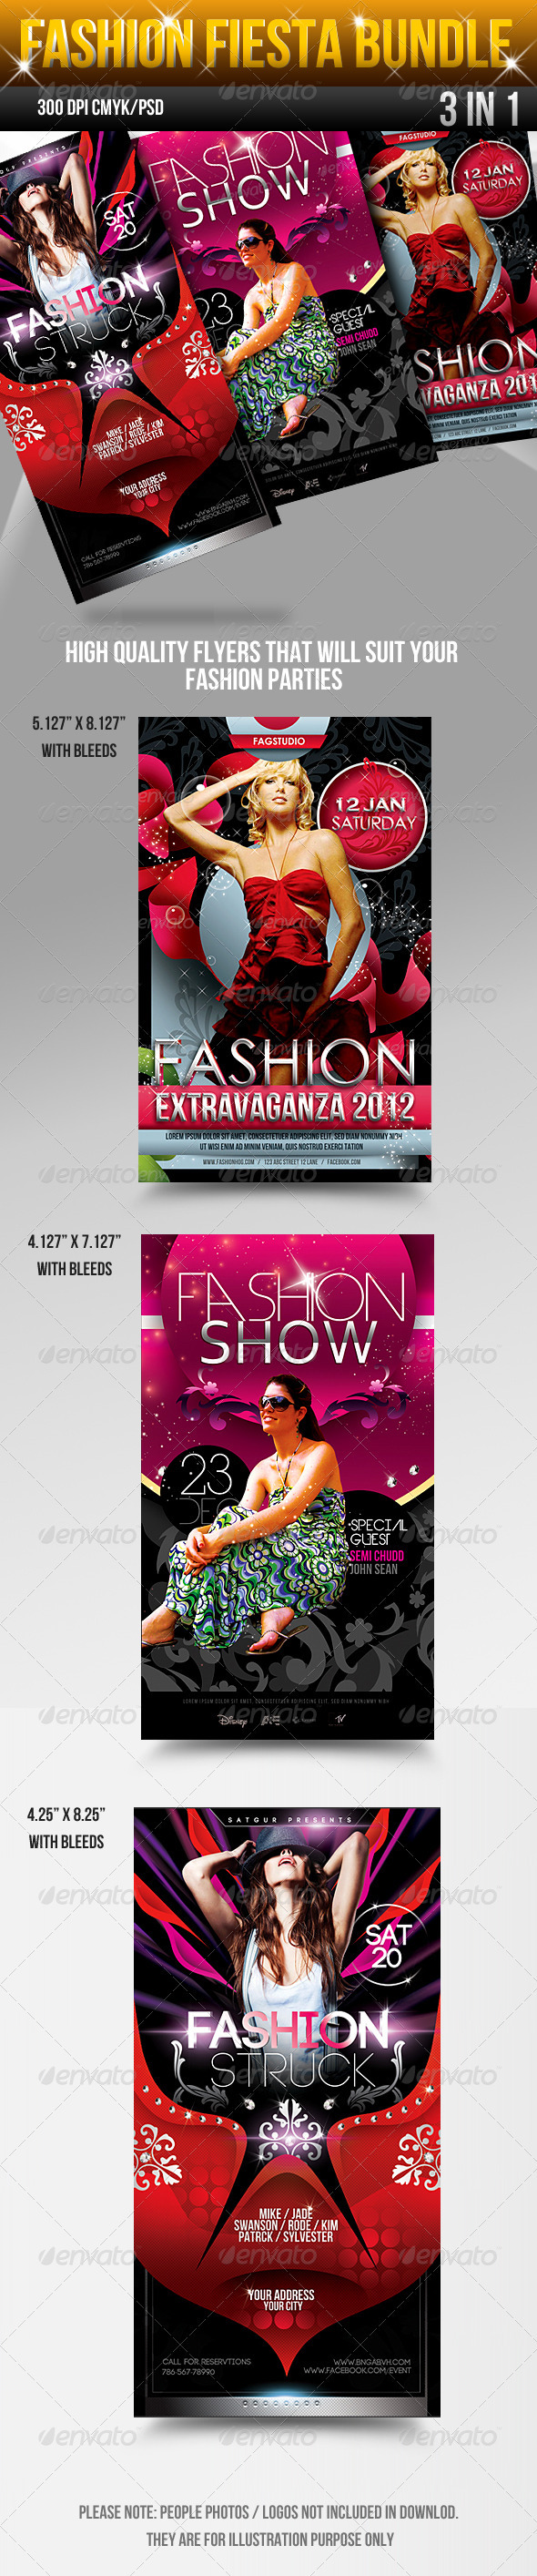 Fashion Fiesta Flyers Bundle - Clubs & Parties Events